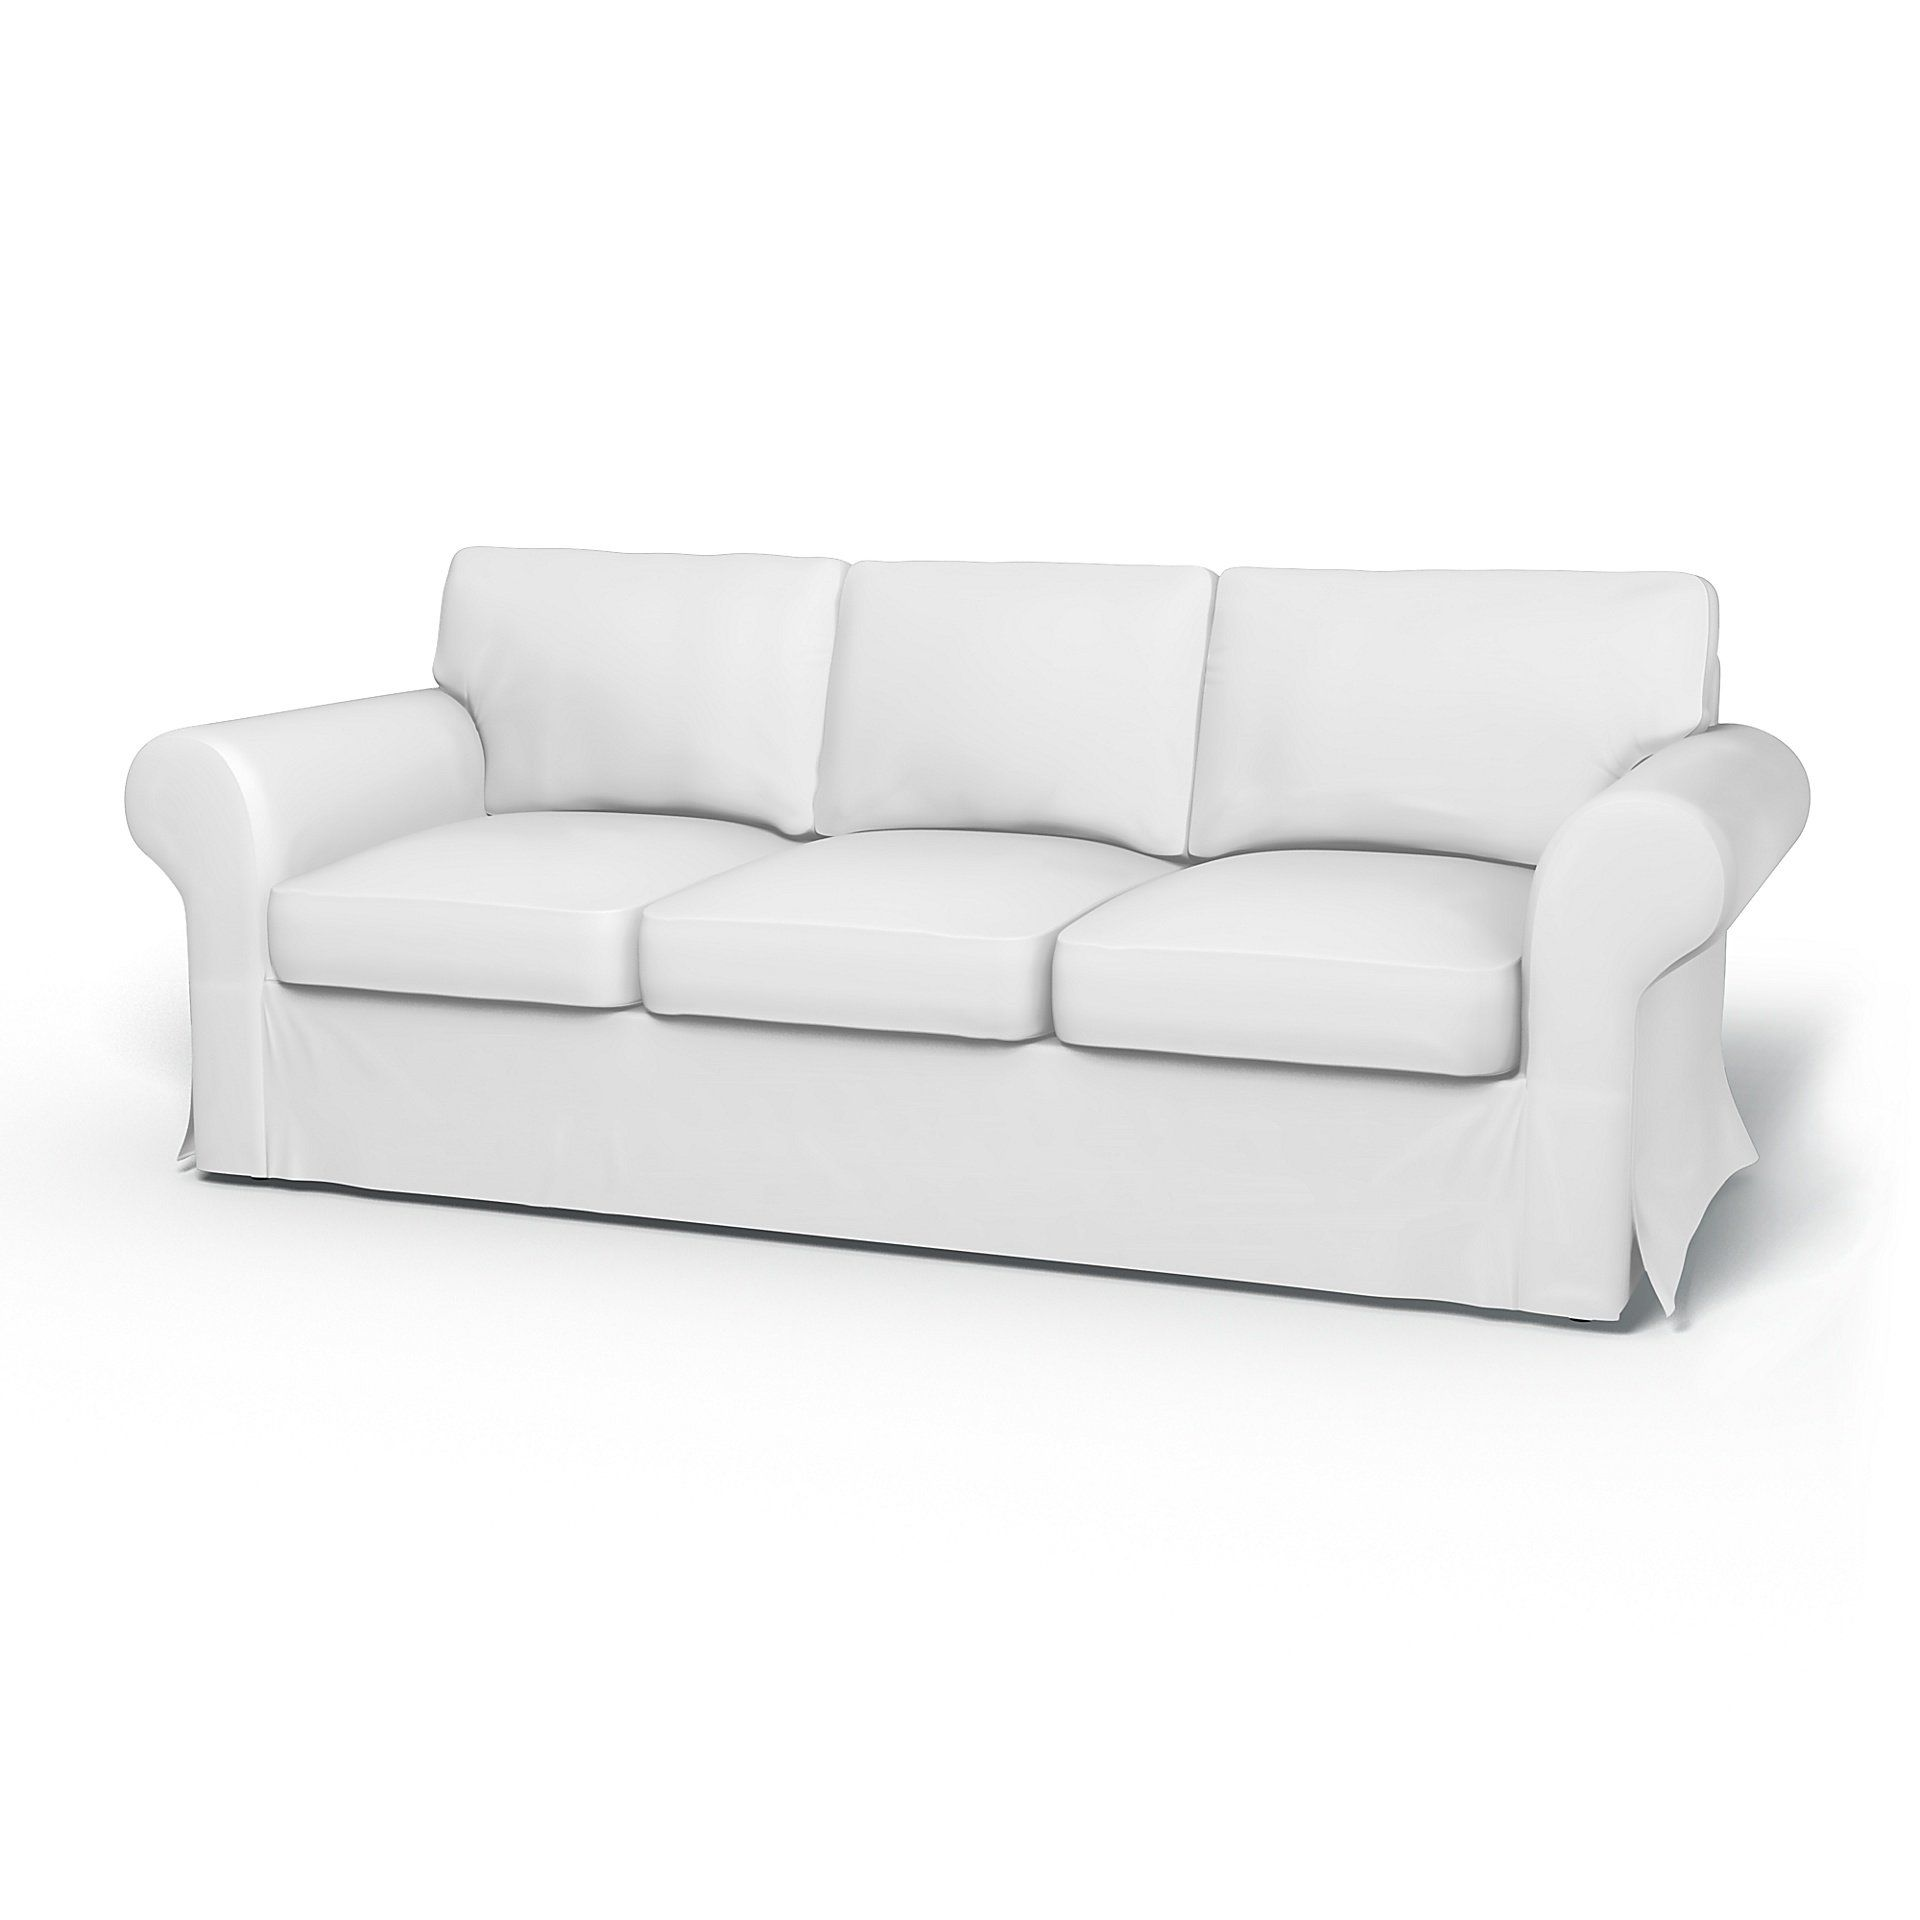 Bezug Fur 3er Sofa Ektorp Bemz In 2020 Ikea Couch Ikea Ektorp 3 Seater Sofa Bed